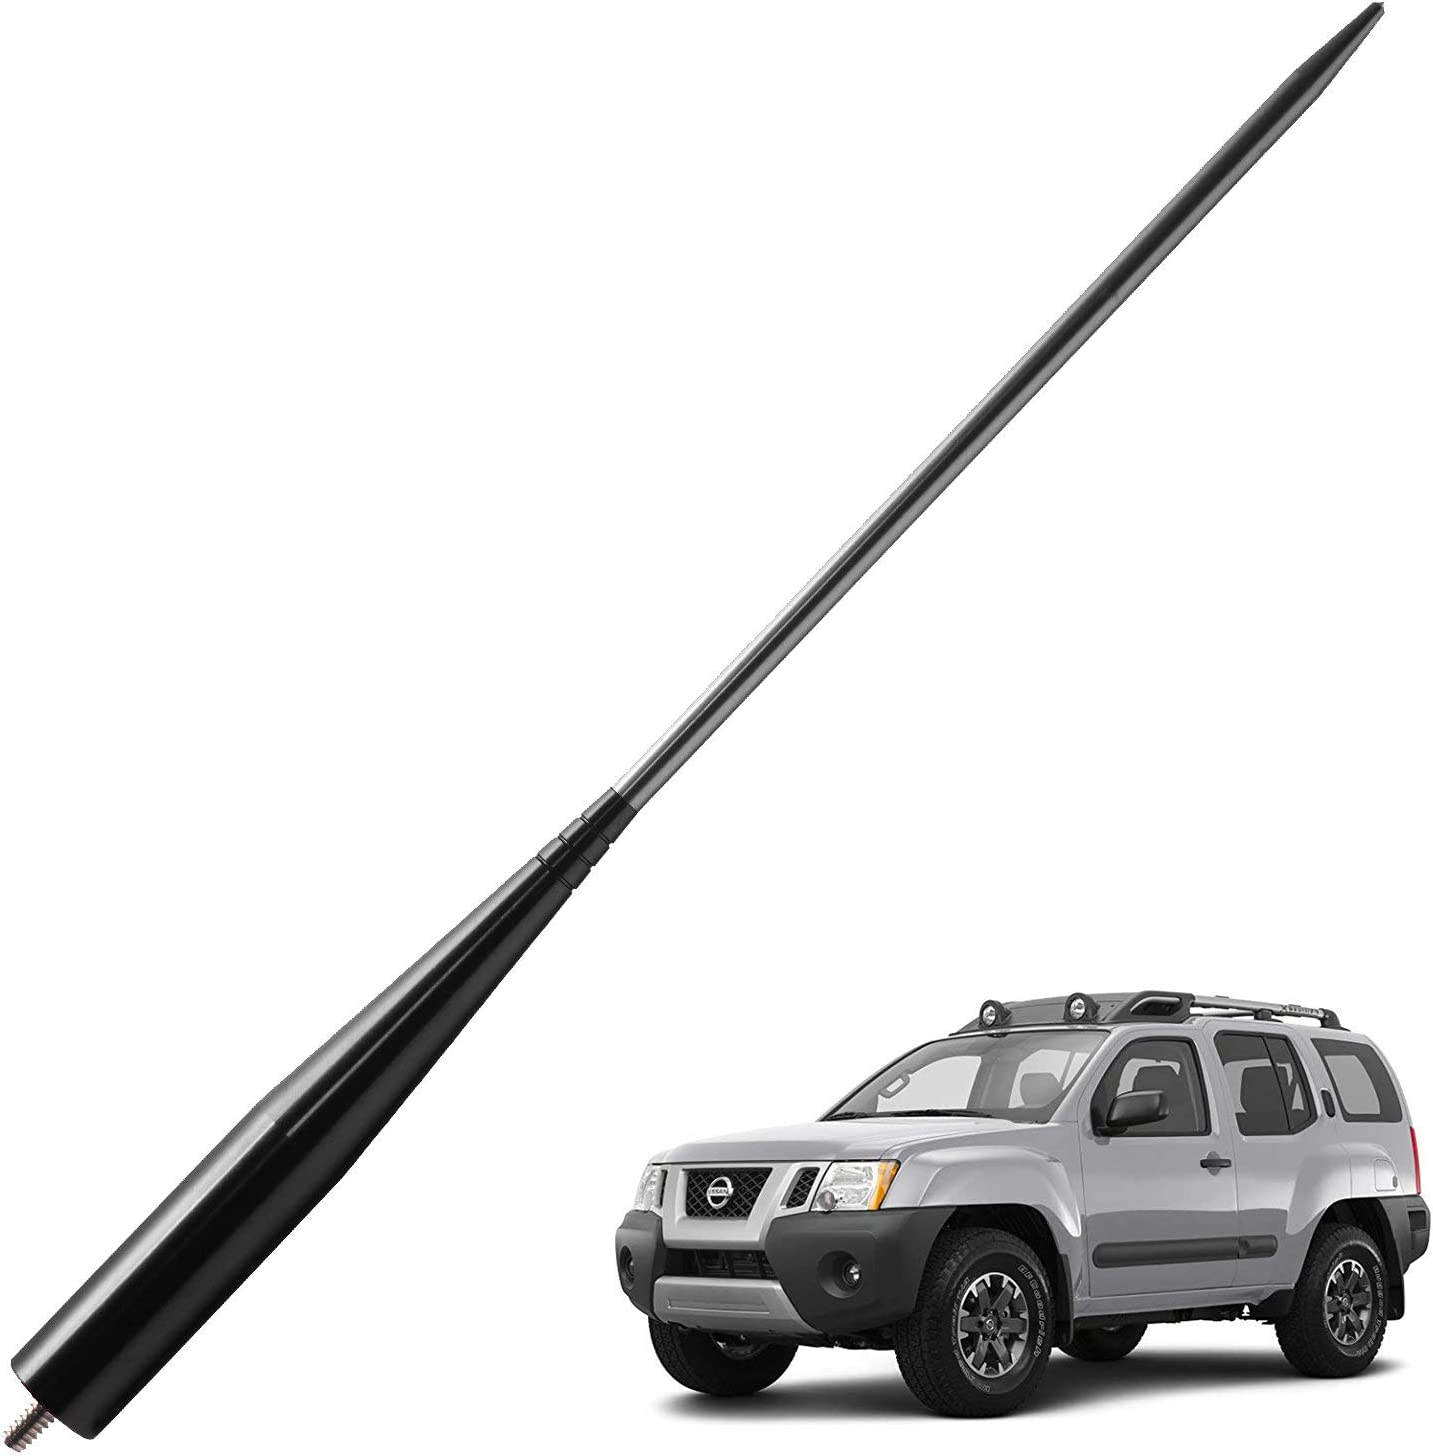 4 inches-Black JAPower Replacement Antenna Compatible with Chrysler Town /& Country 2008-2016